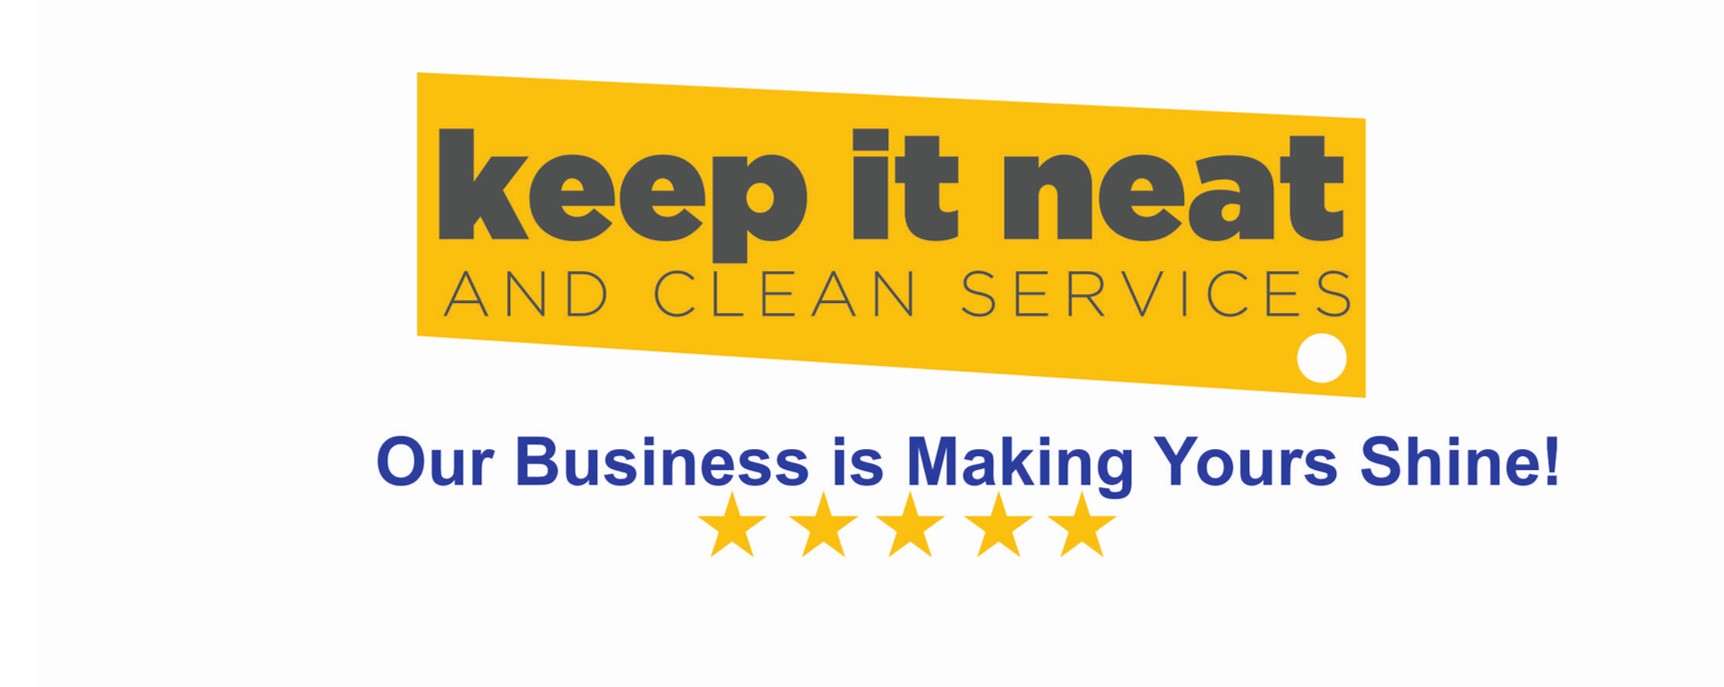 Keep it Neat and Clean Services